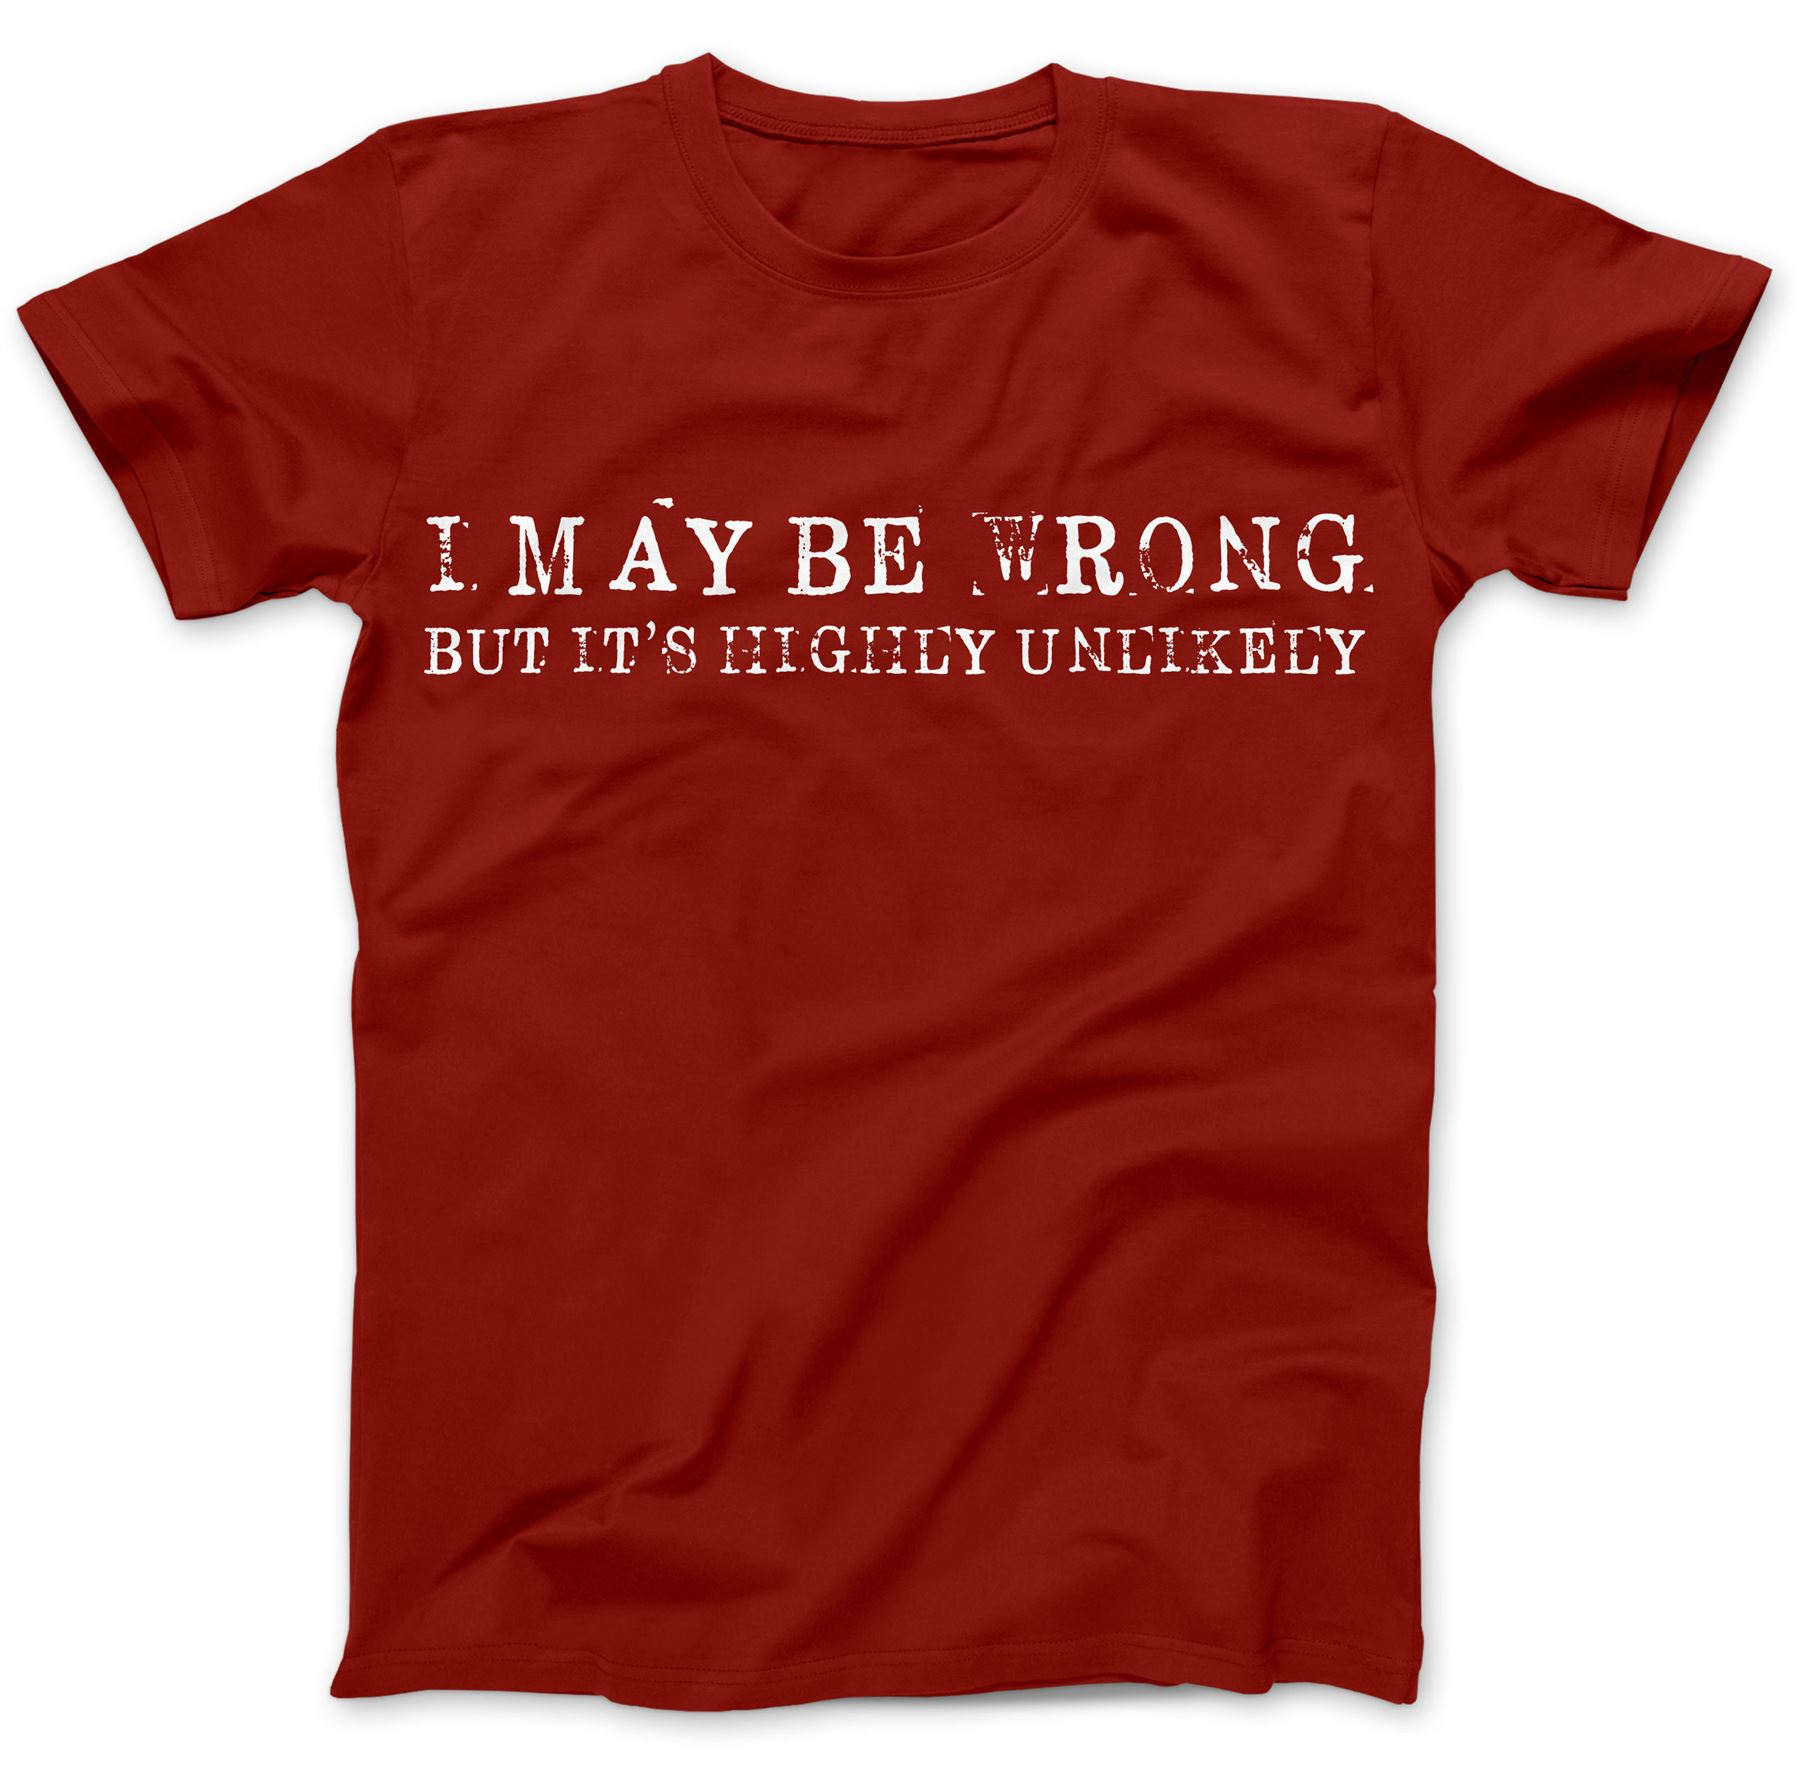 I May Be Wrong But Highly Unlikely Funny T-Shirt 100/% Premium Cotton Gift